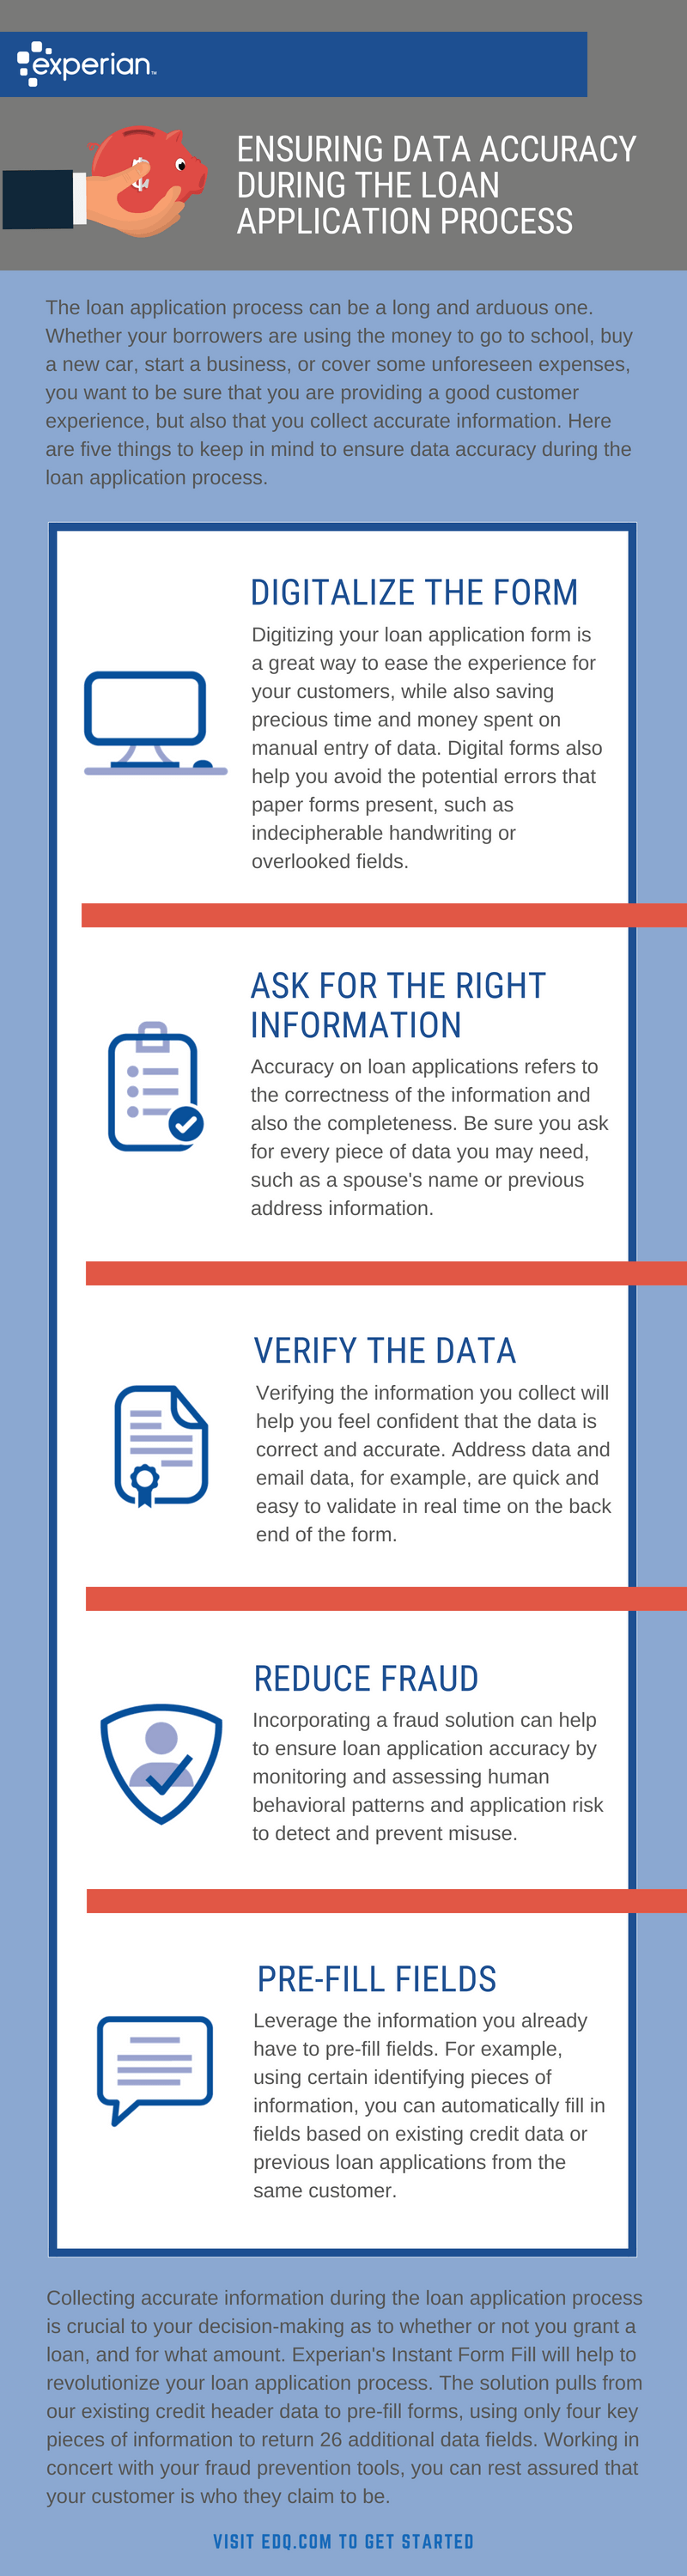 ensuring data accuracy infographic